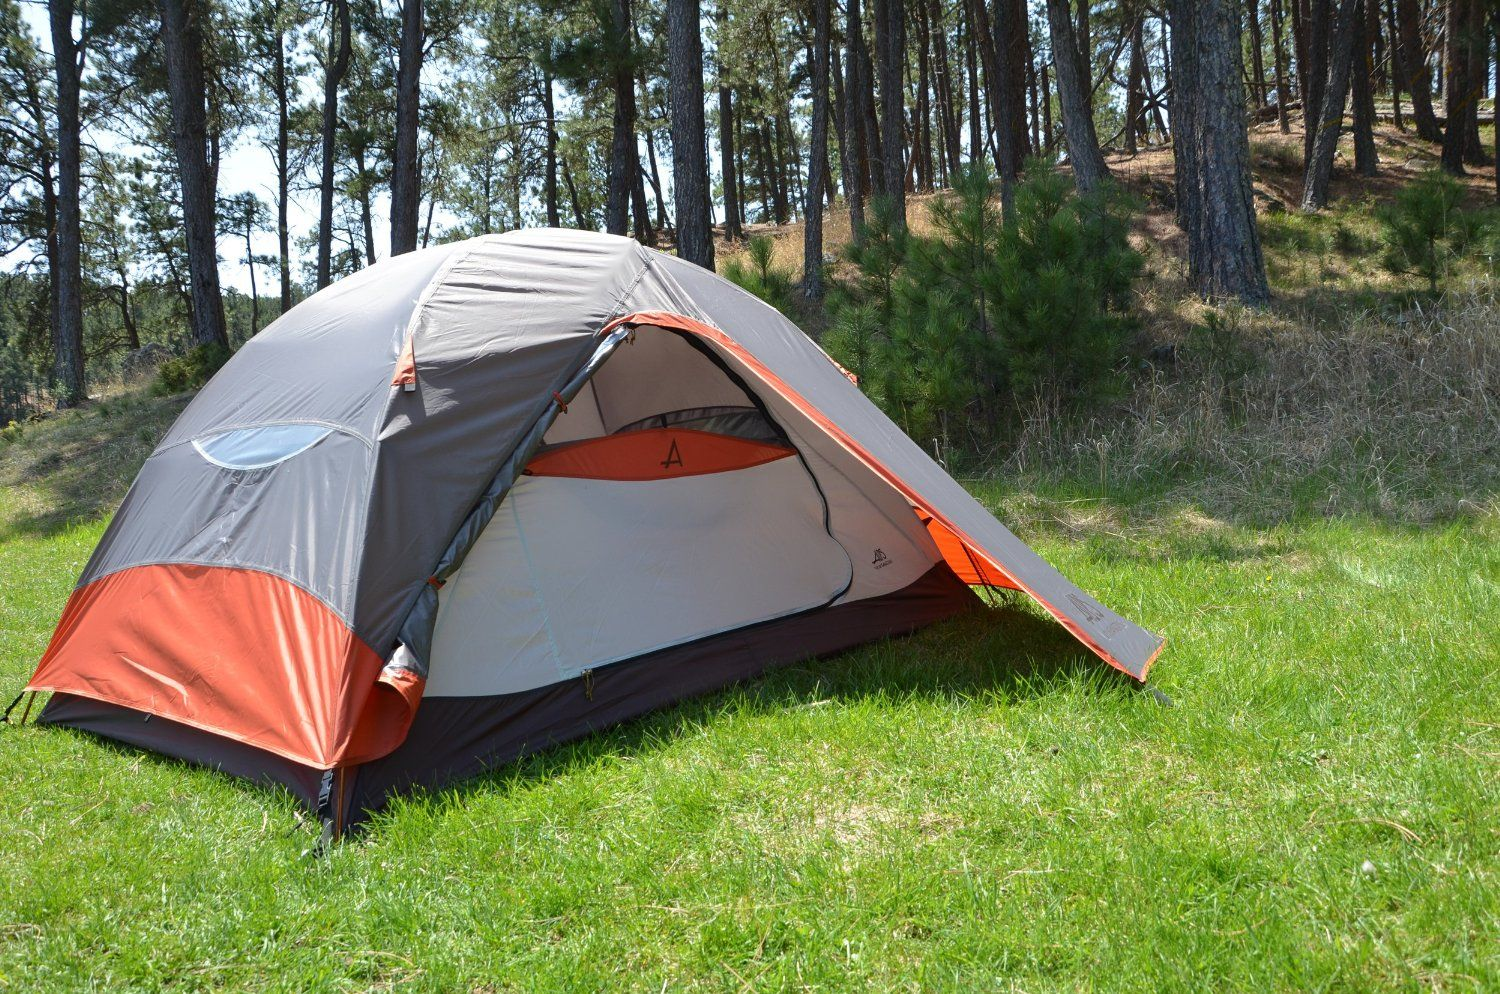 ALPS Mountaineering Morada 4 Tent · Tent ReviewsMountaineeringAlps BackpackingTentsBackpackerTravel ... : backpacking tents reviews - memphite.com